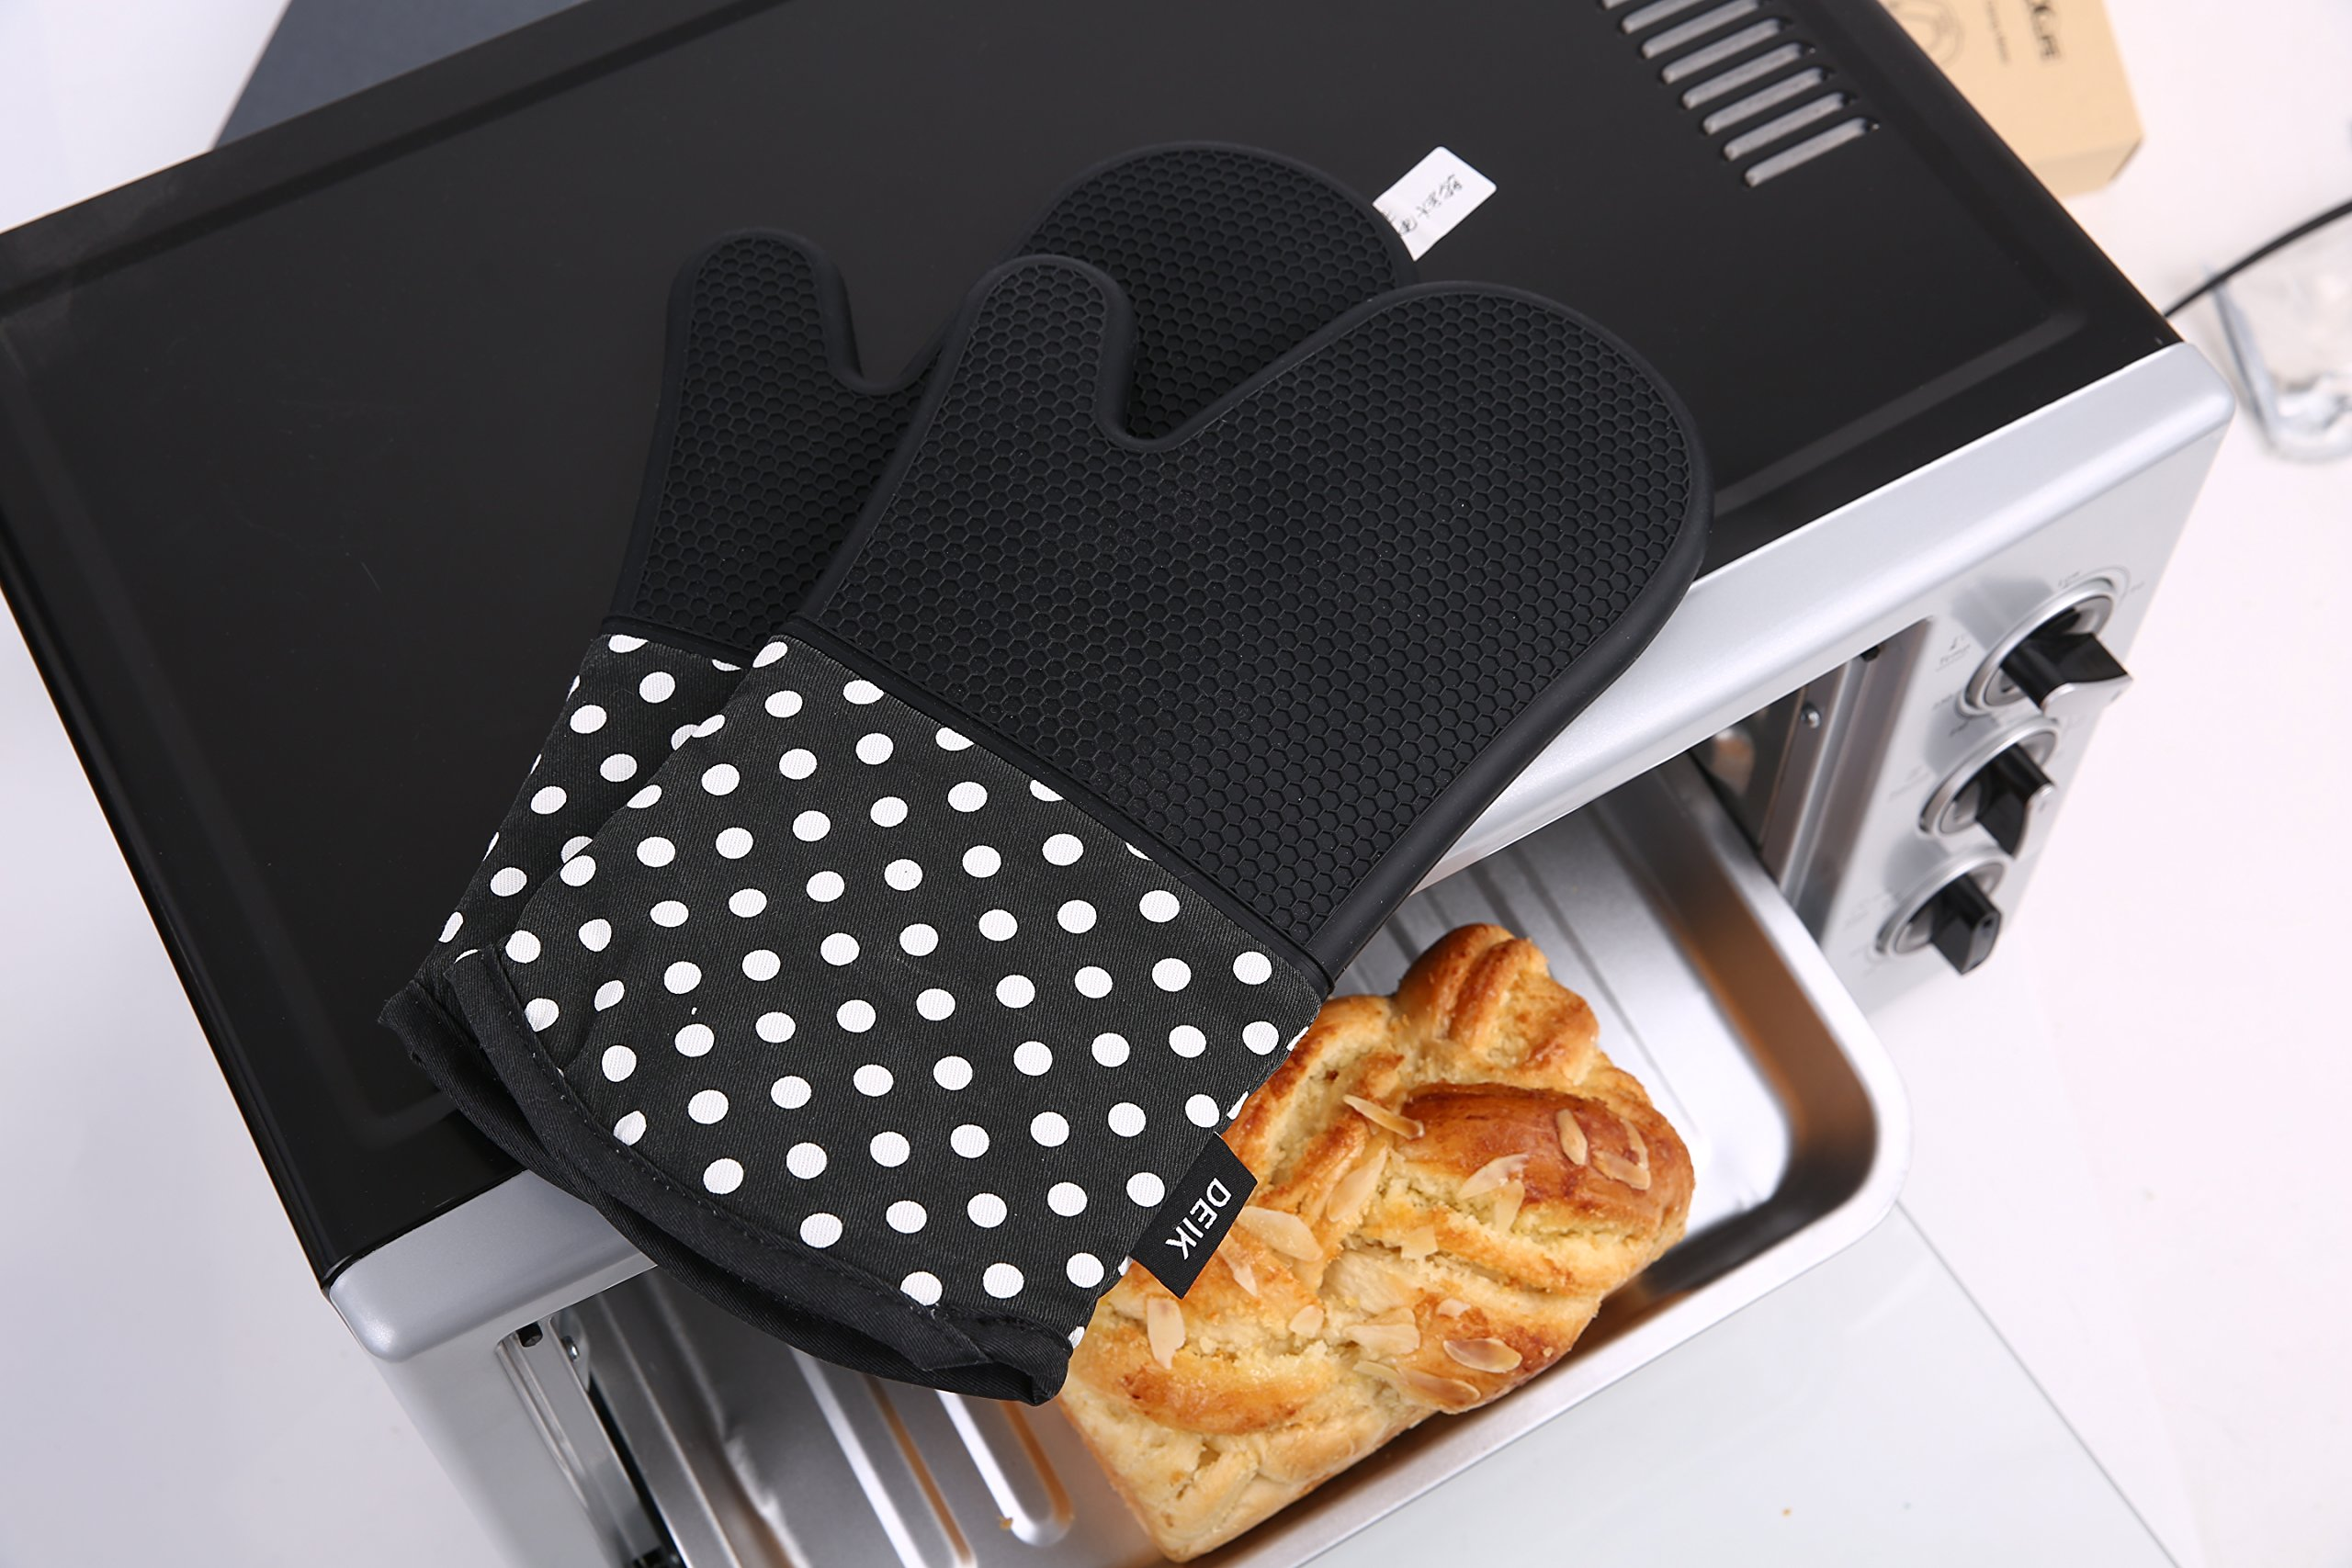 Deik Oven Mitts, Non-Slip Silicone Oven Mitts, Extra Long Kitchen Mitts, Heat Resistant to 572°F Kitchen Oven Gloves, 1 Pair, Black by Deik